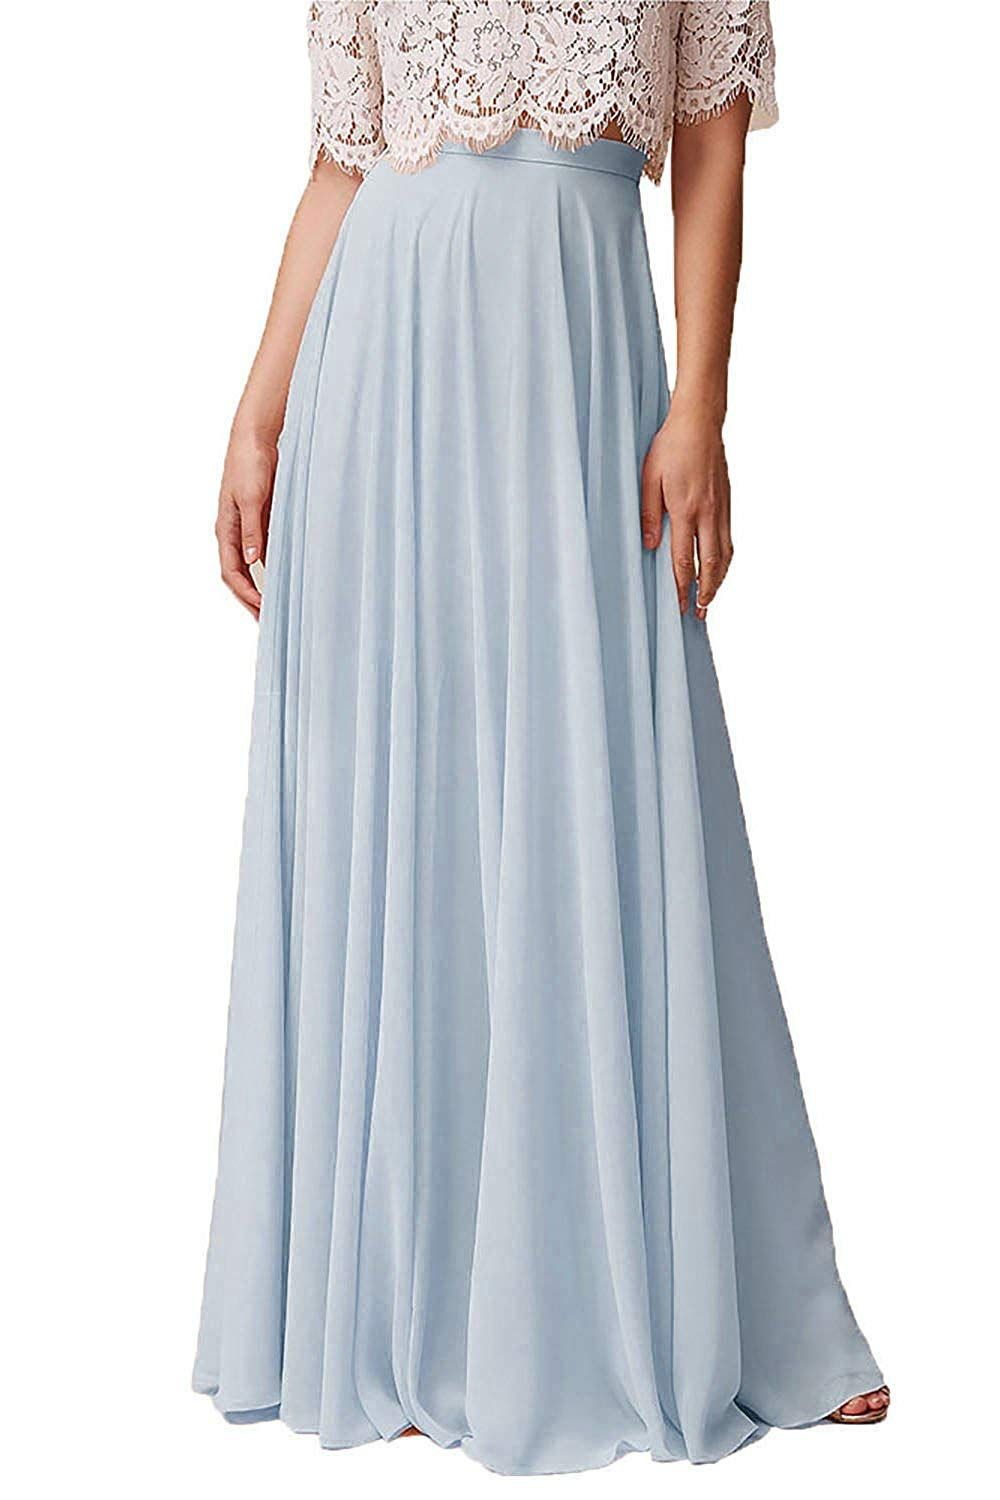 bf3fe995d9 Honey Qiao Chiffon Bridesmaid Dresses High Waist Long Woman Maxi Skirt at  Amazon Women's Clothing store: